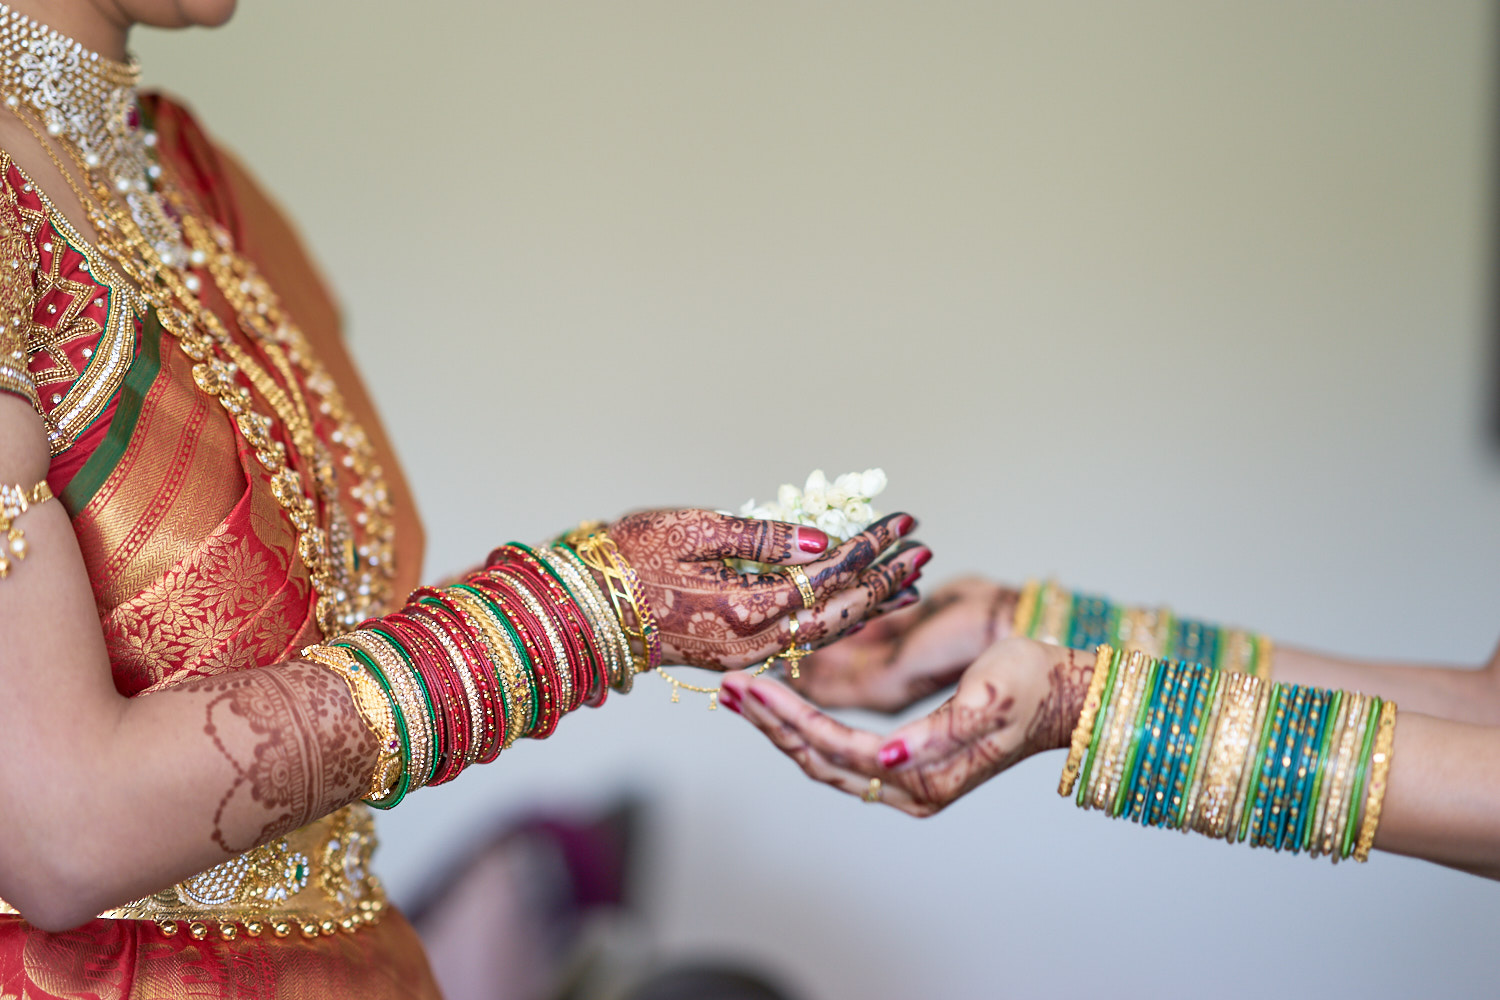 south-indian-wedding-ceremony-photography-by-afewgoodclicks-net-in-saratoga 52.jpg